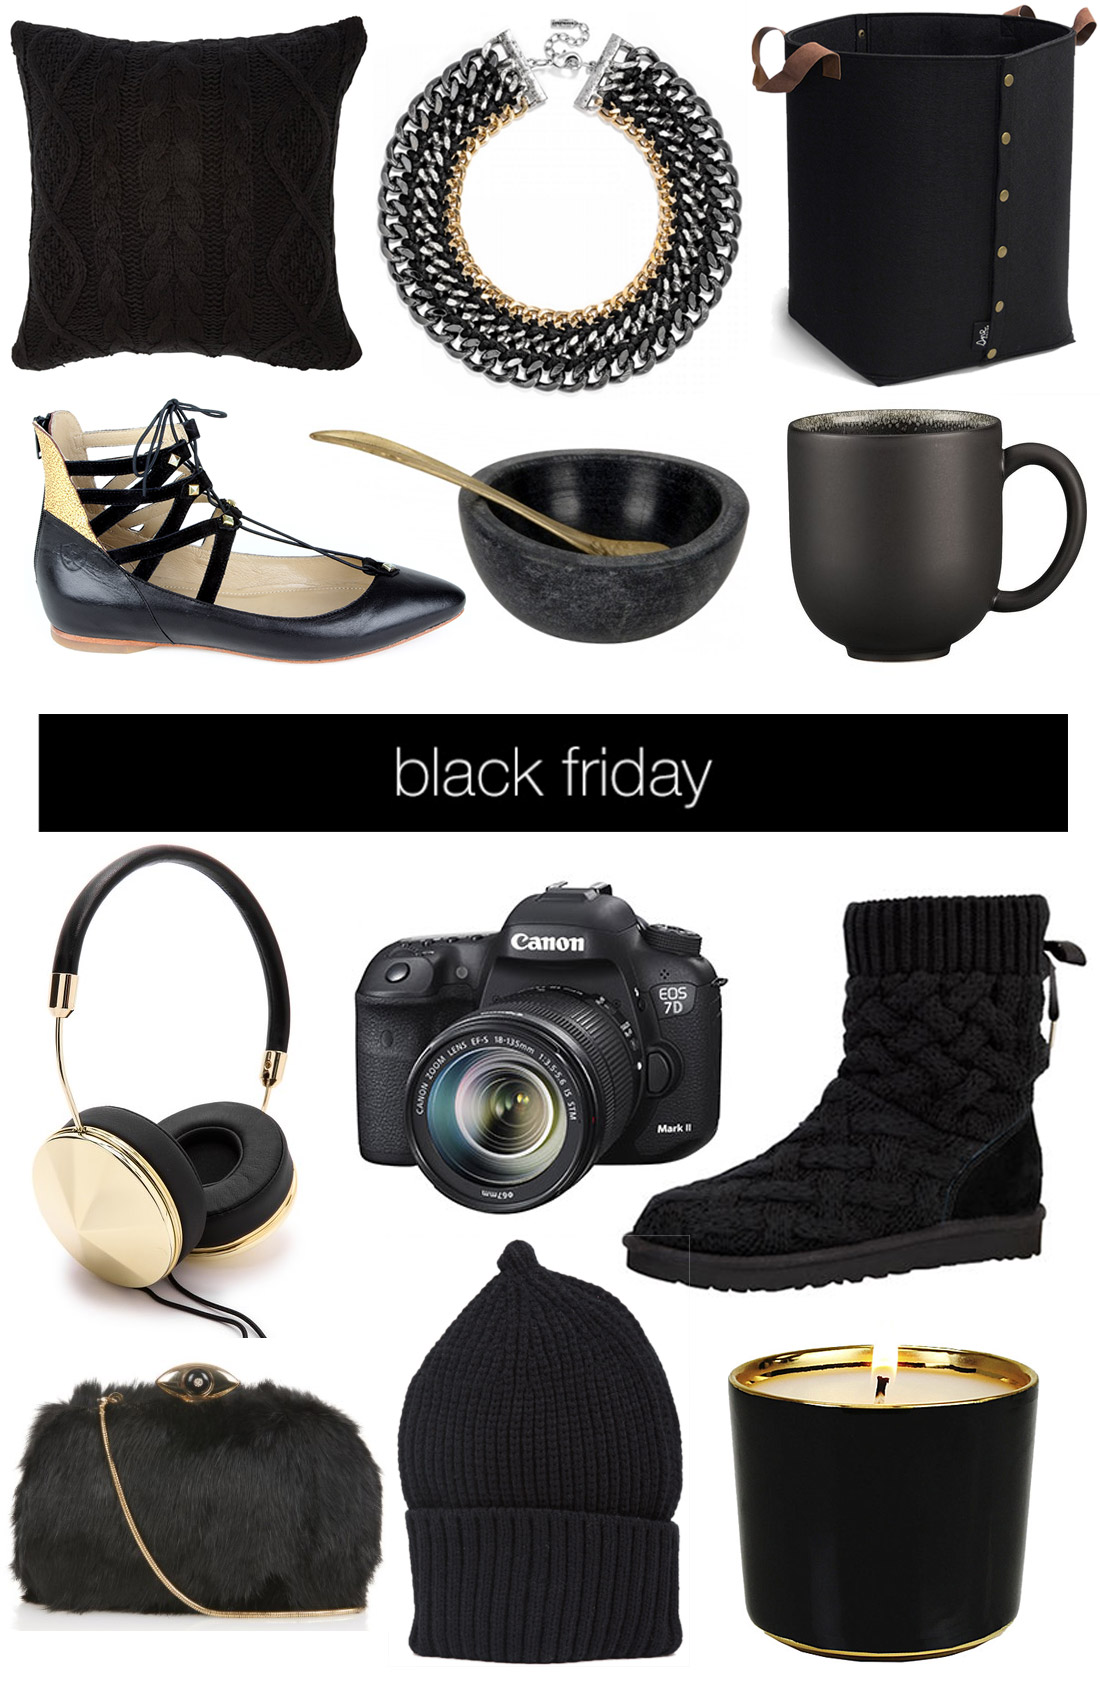 Black Friday Cyber Monday Sales 2015